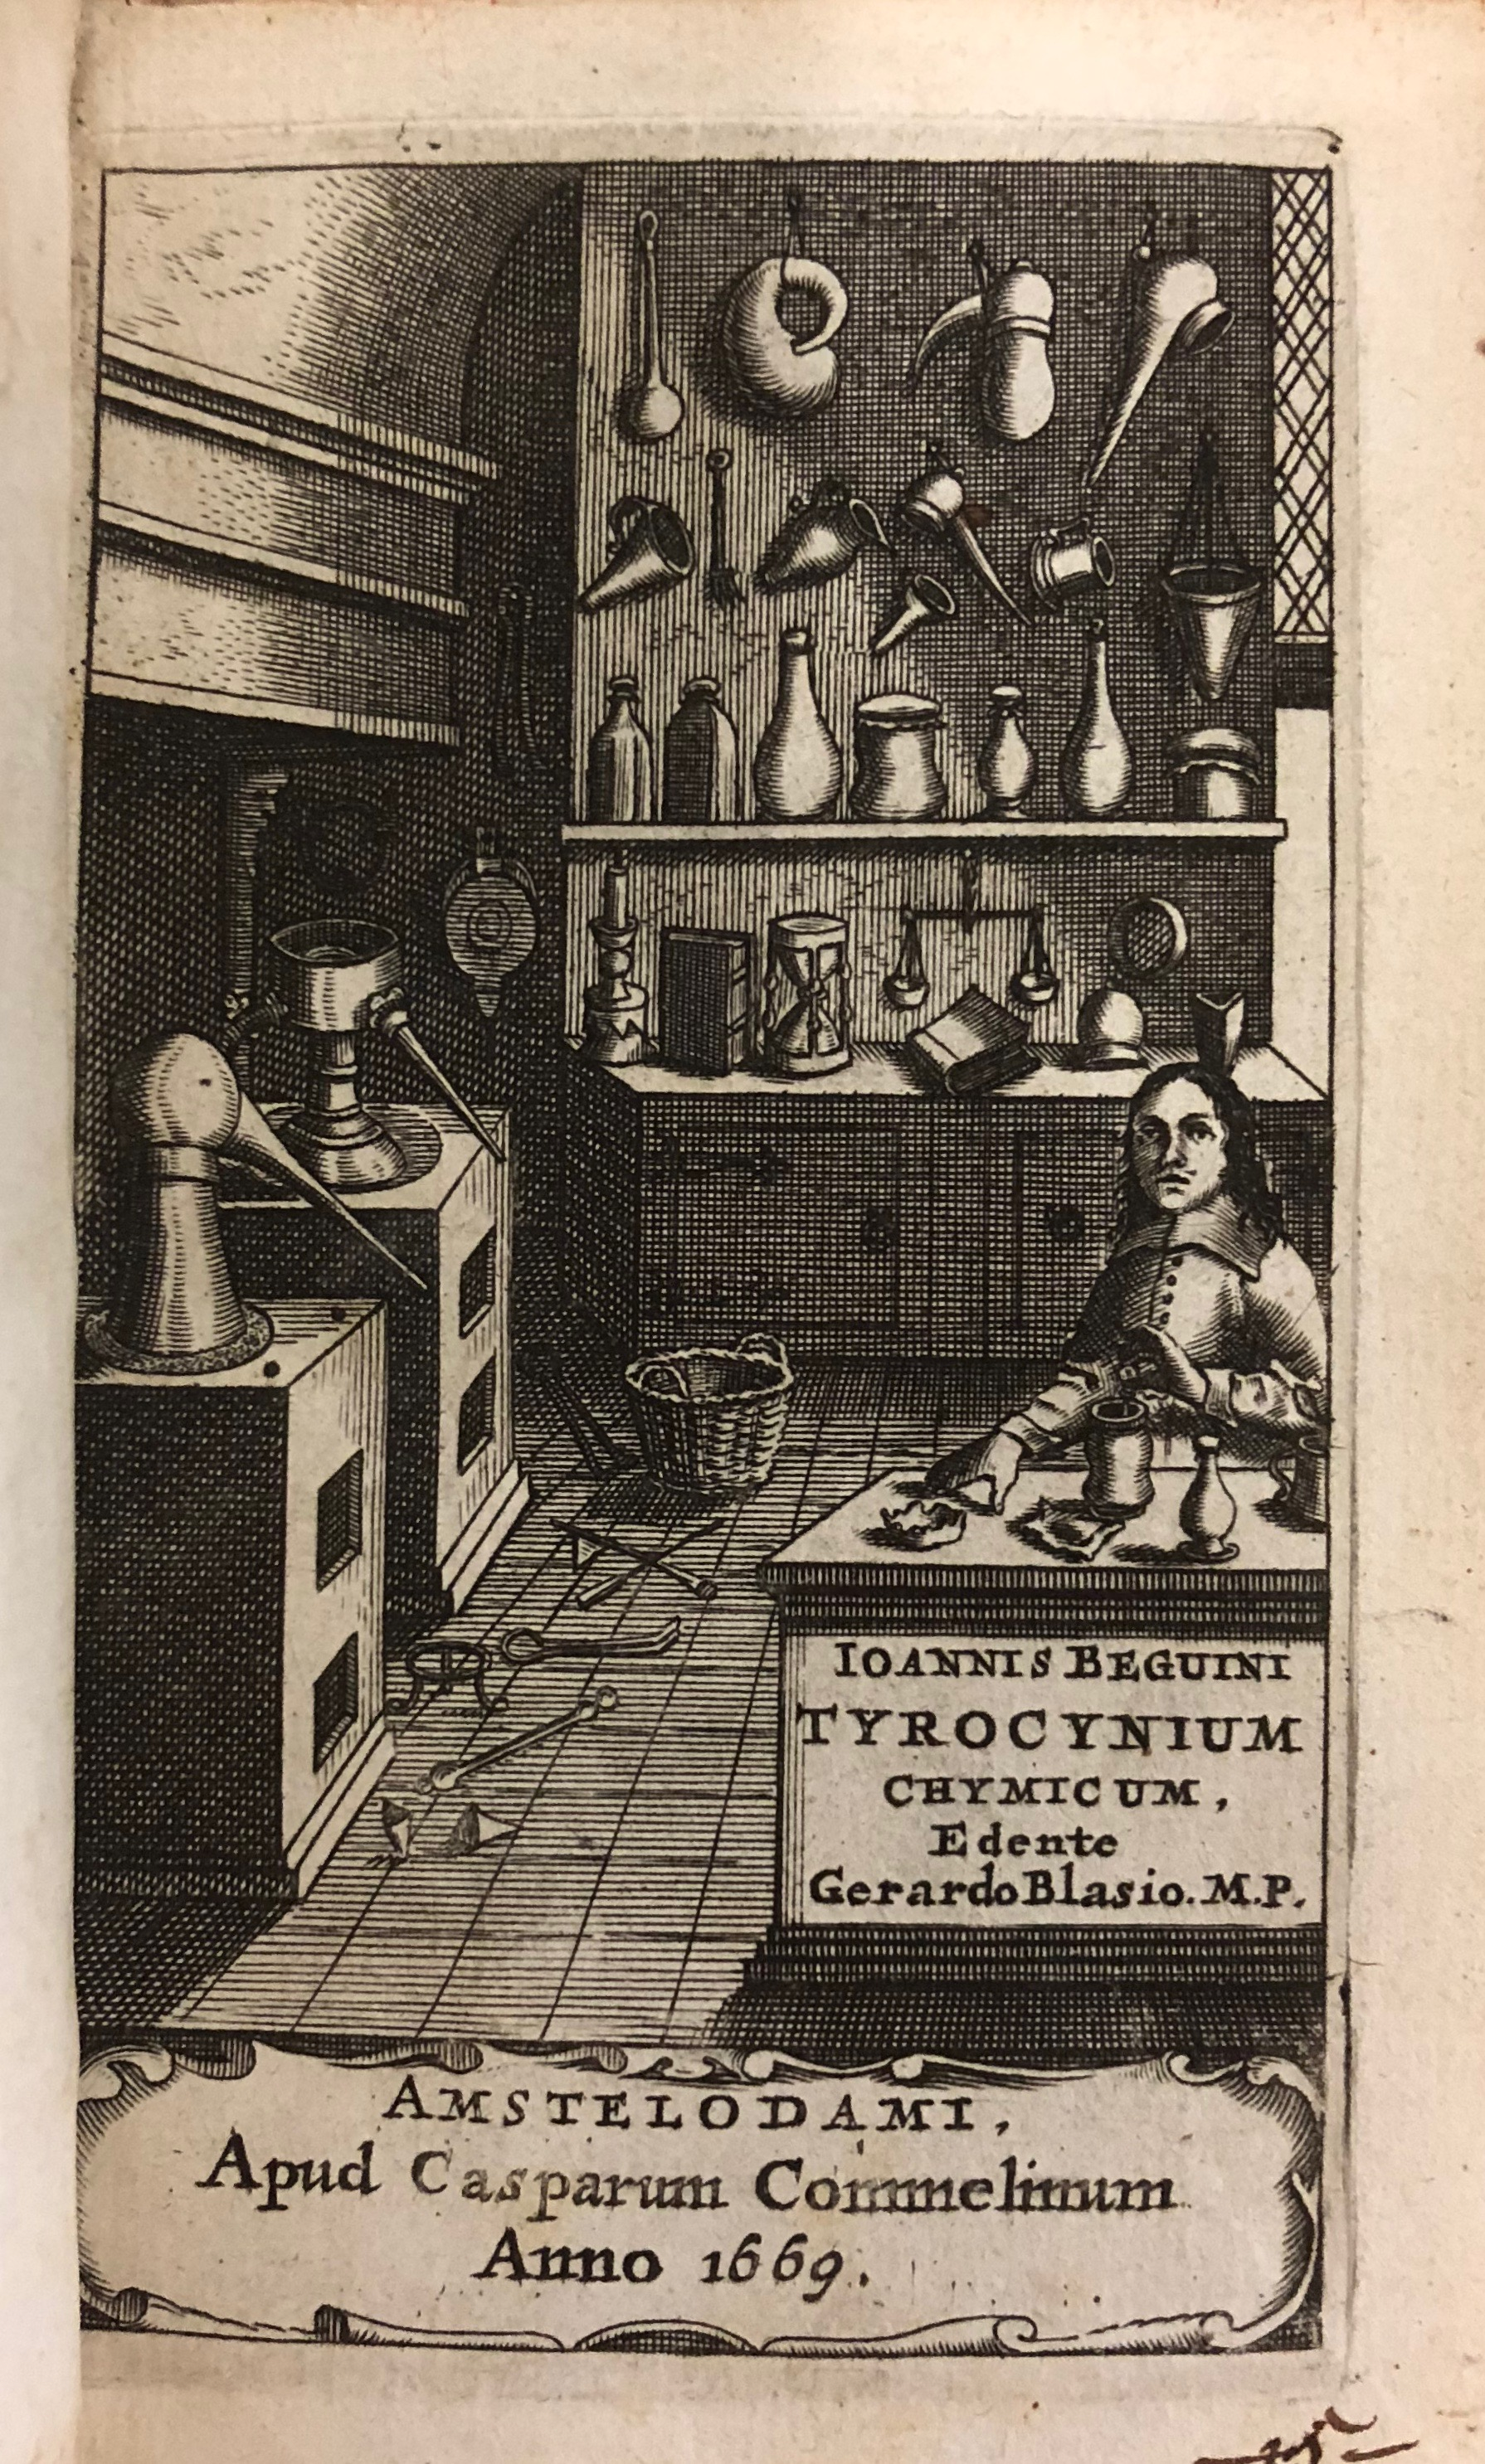 Illustration from 'Tyrocinium chymicum' by Jean Beguin, 1669, Amsterdam. (Maddison Collection 1A21, F10448000)